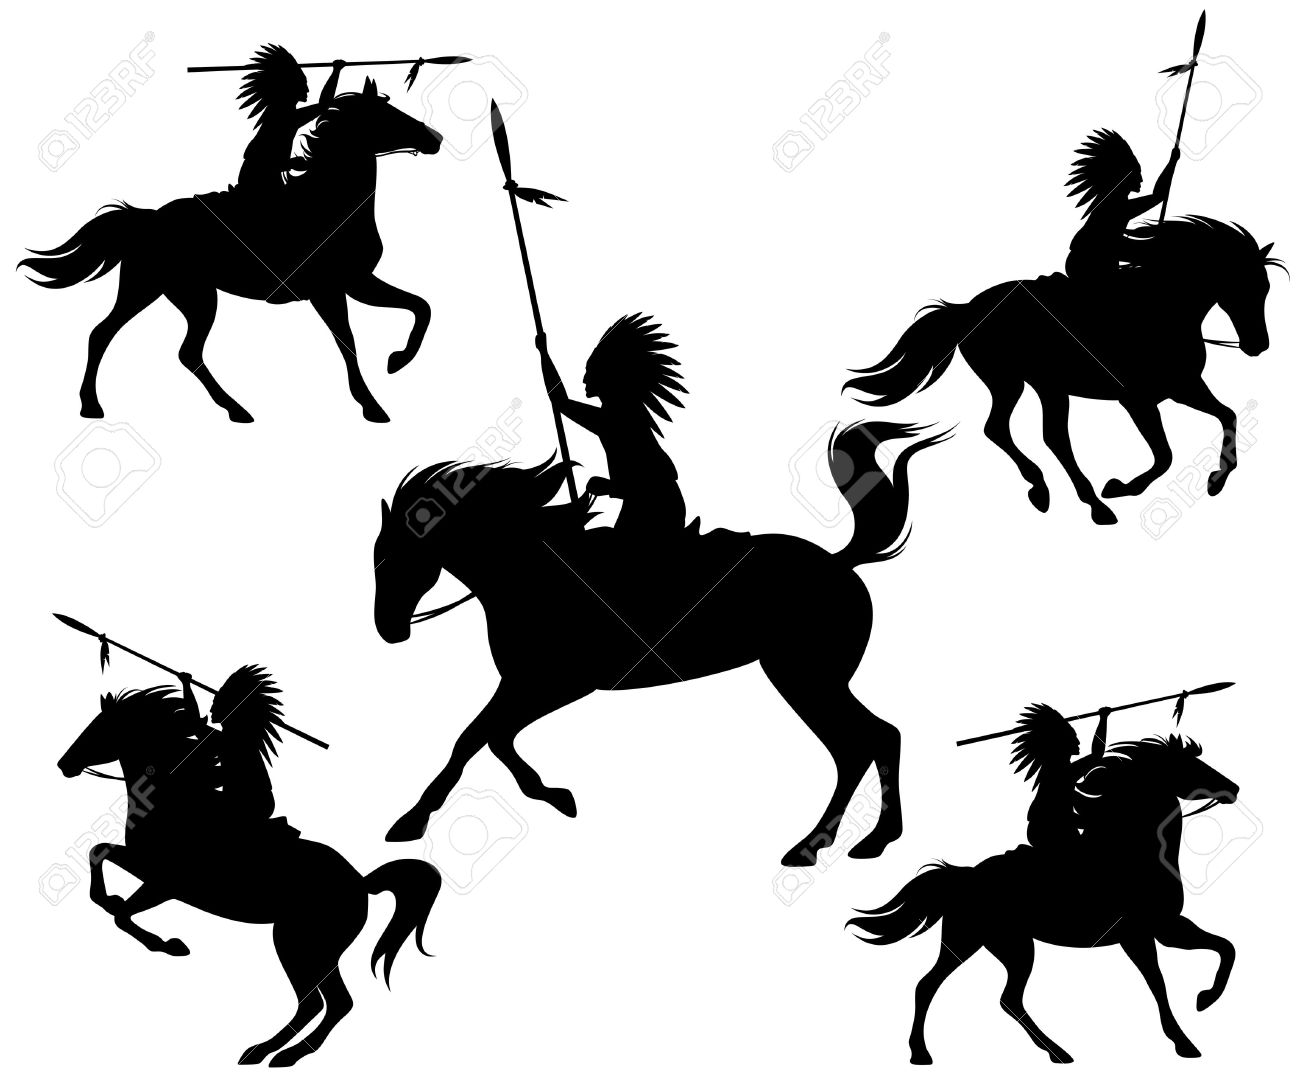 wild west silhouettes - native american warriors riding horses - 27443997